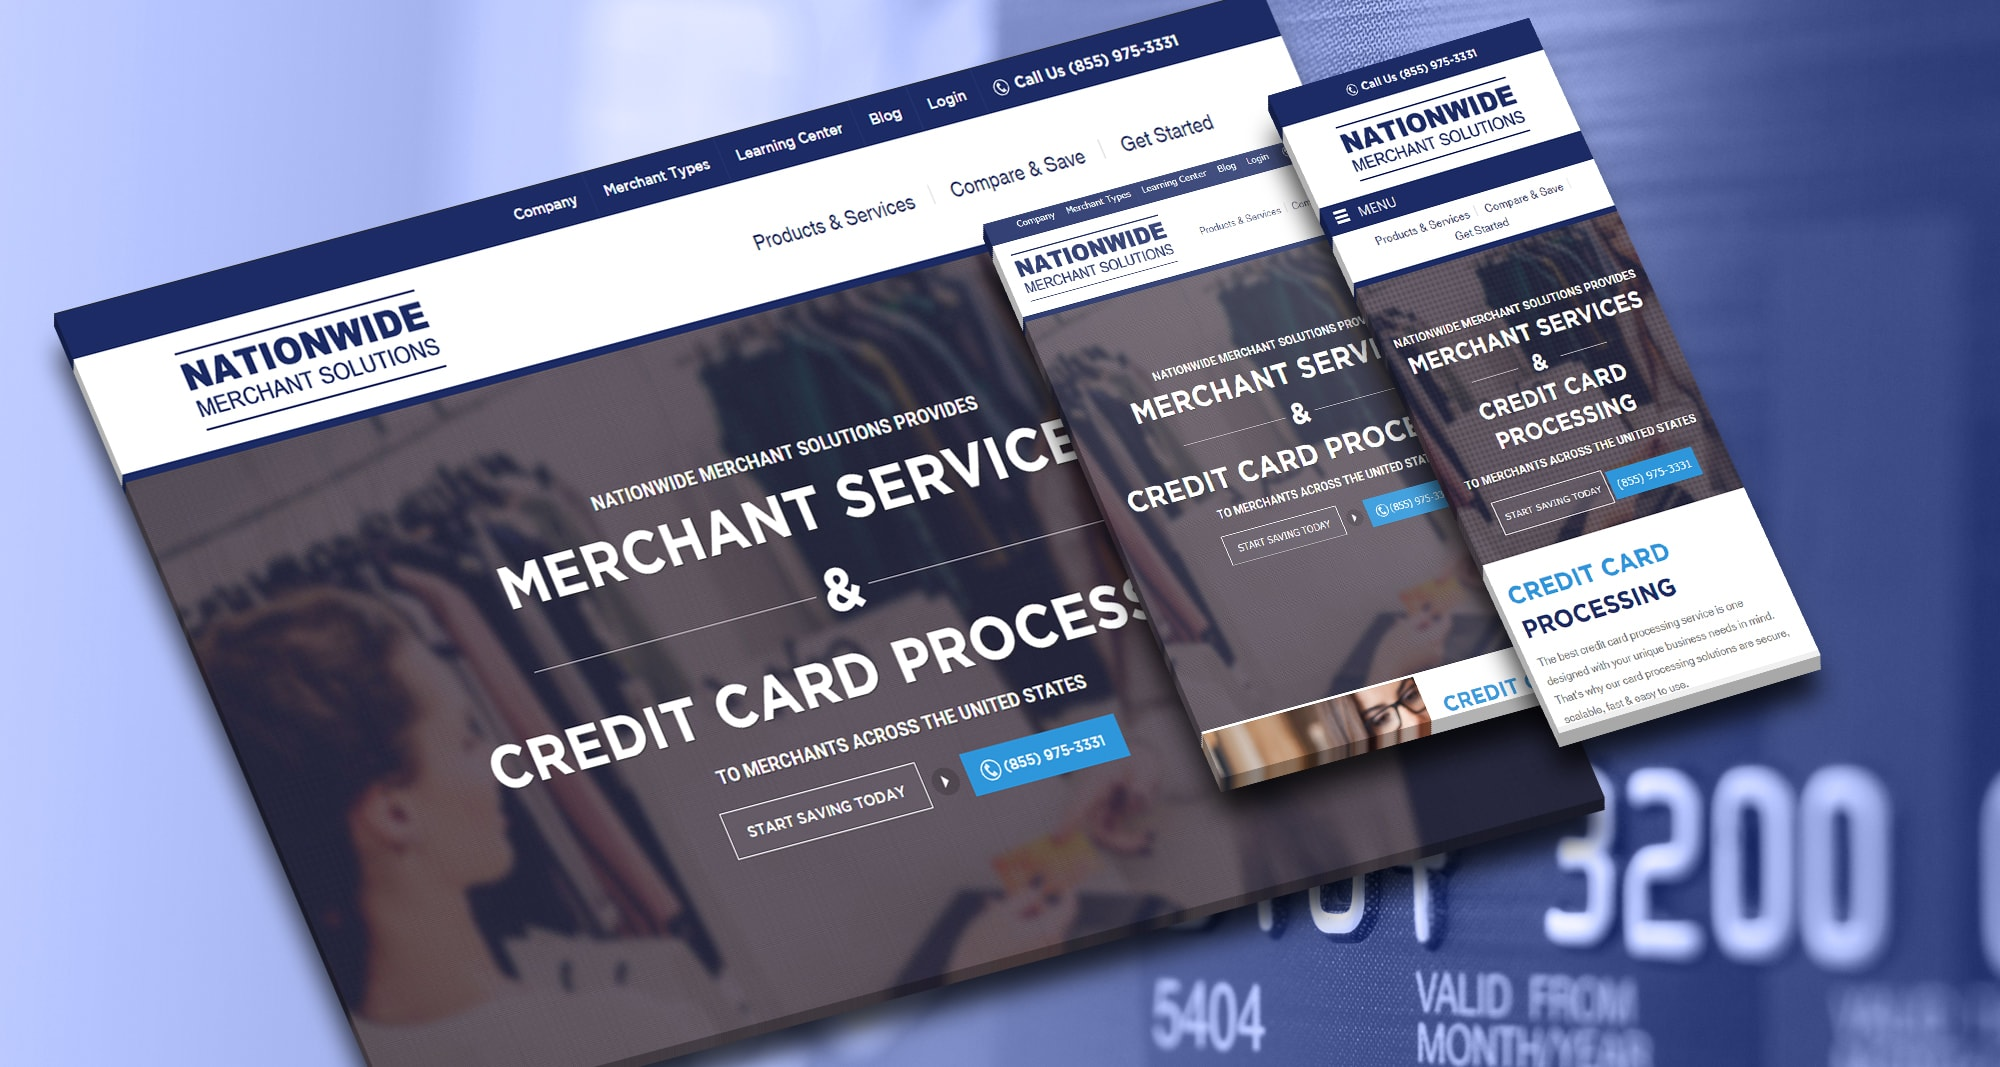 Merchant services marketing website design seo ppc ss nj merchant services digital marketing case studies reheart